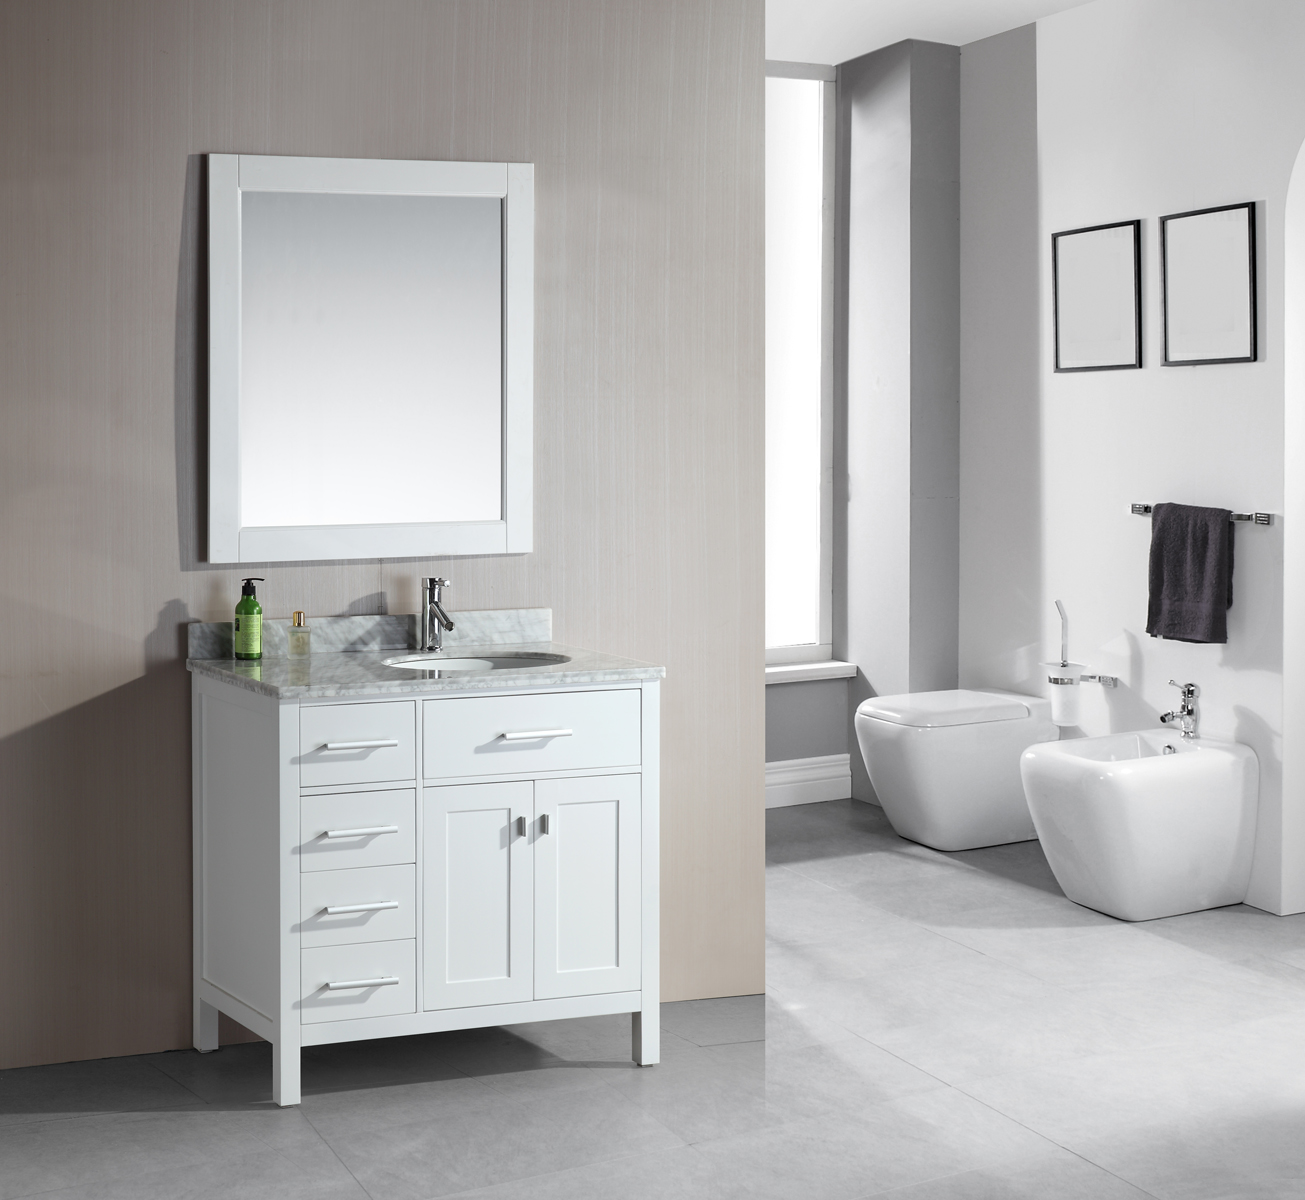 bathroom vanity designs adorna 36quot single bathroom vanity white finish white bathroom vanity TARQXGQ